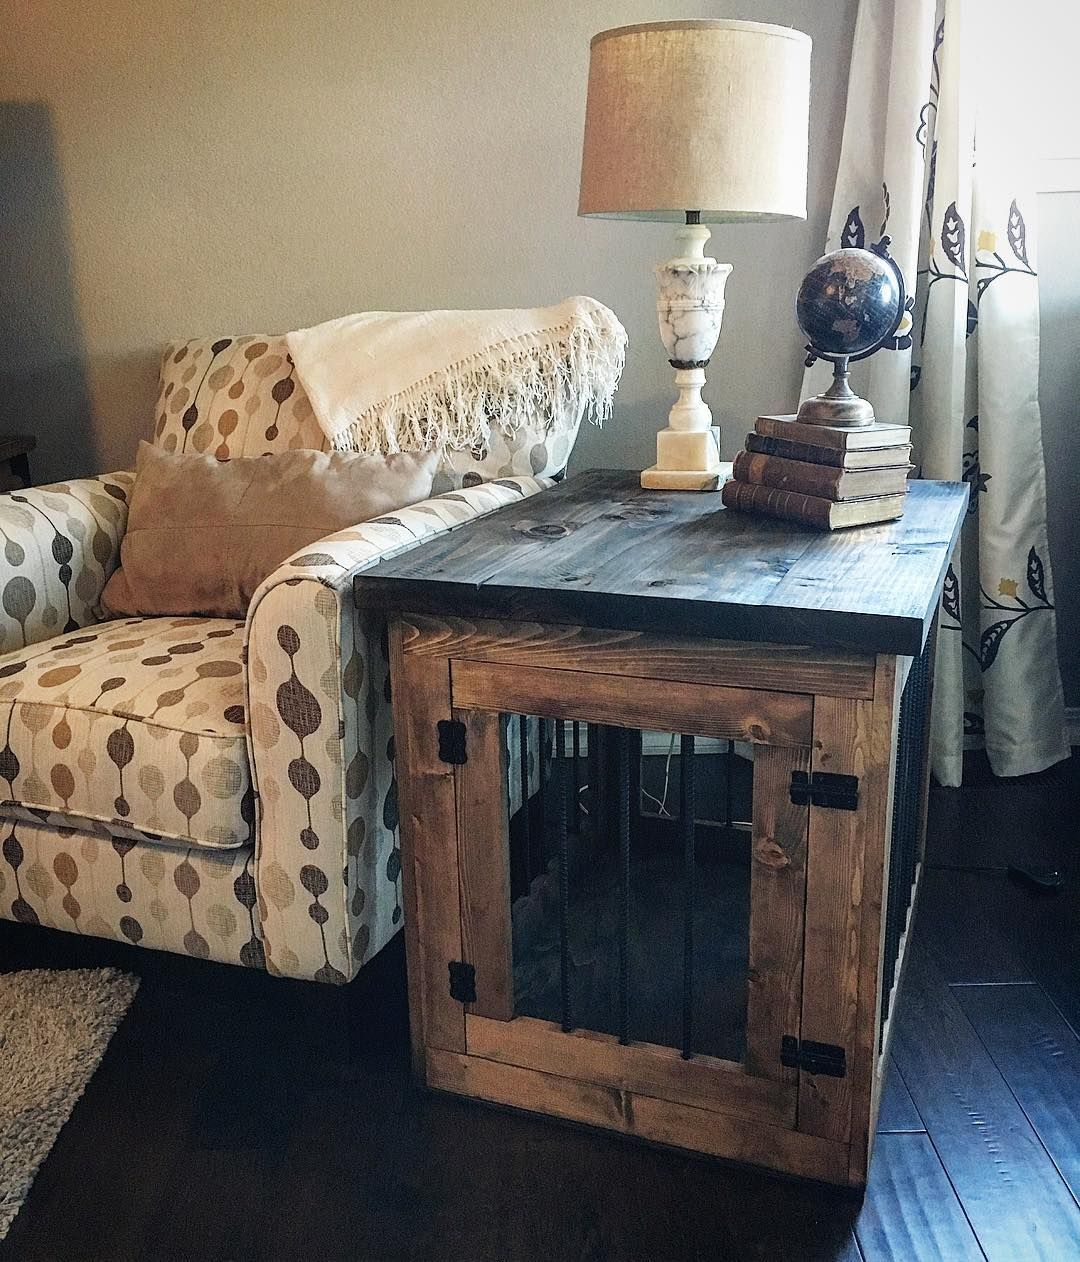 what is the best living room furniture for dogs setup small space 13 unbelievably cool dog crate hacks rover com casa mia